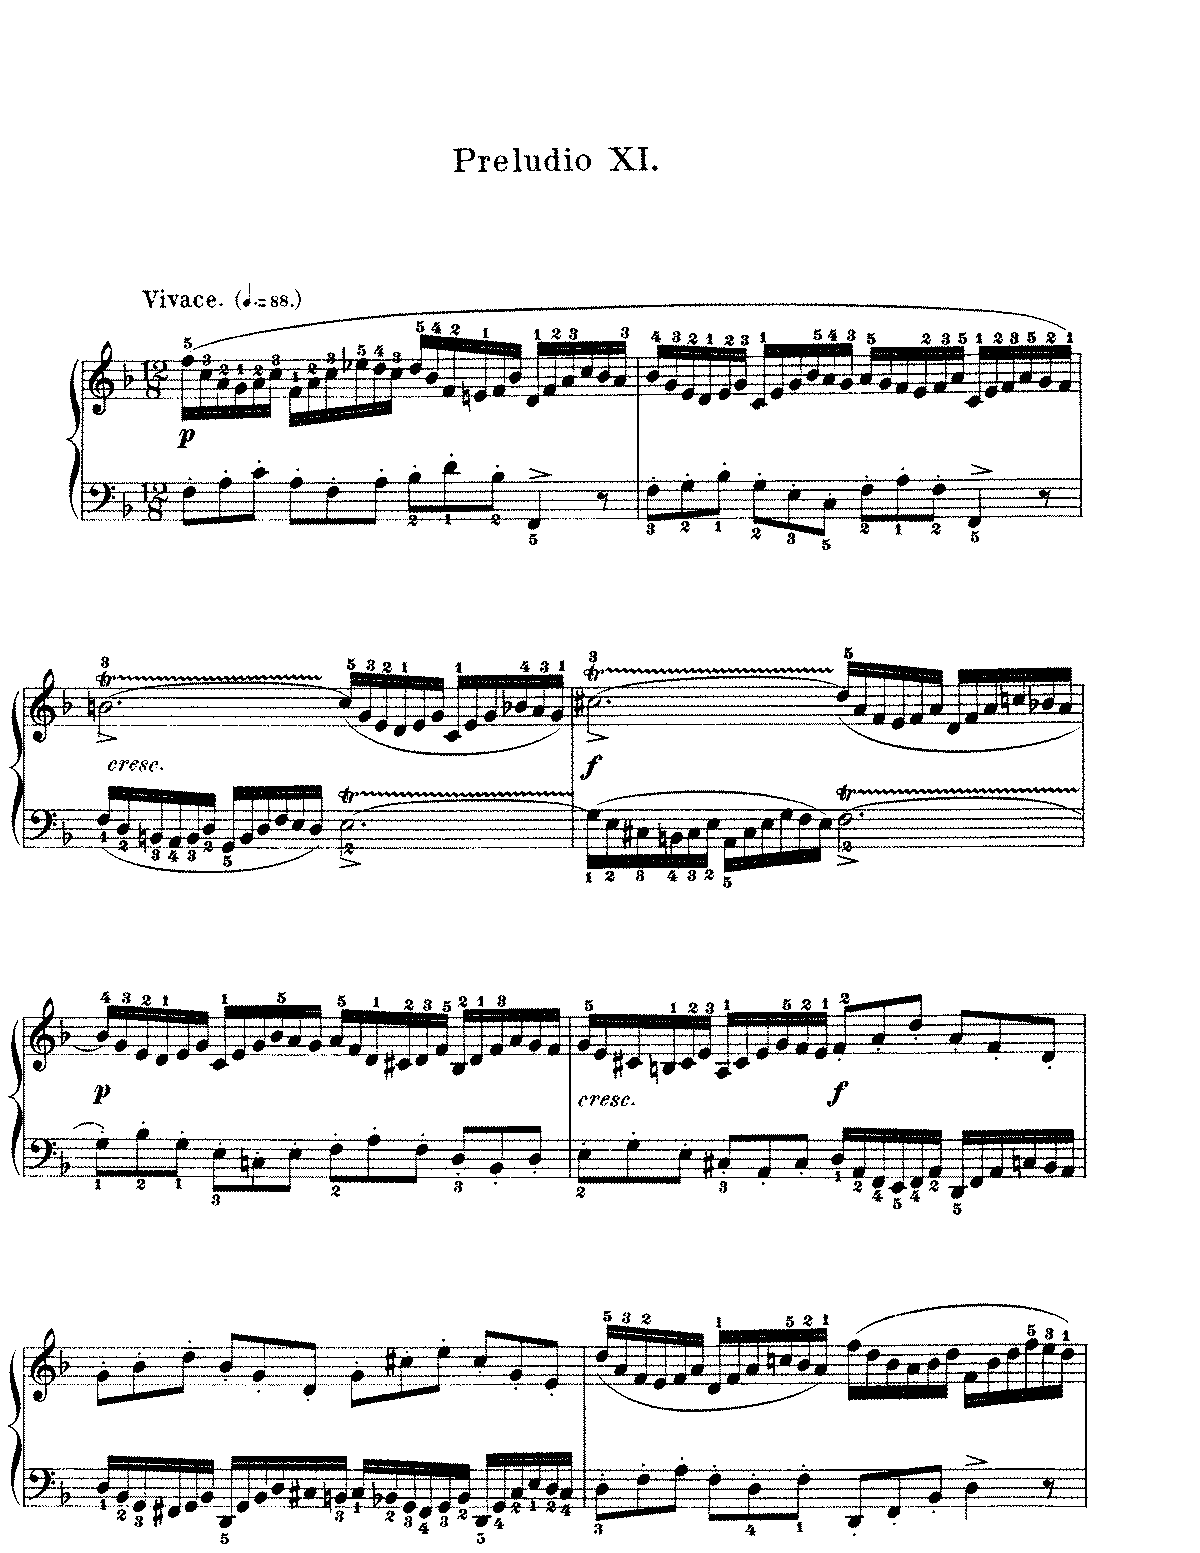 an analytical discussion on bach's prelude Discussion of rhetorical meaning fugue in this fugue bach interrupted counterpoint that he had earlier quoted in the bm prelude and fugue of.